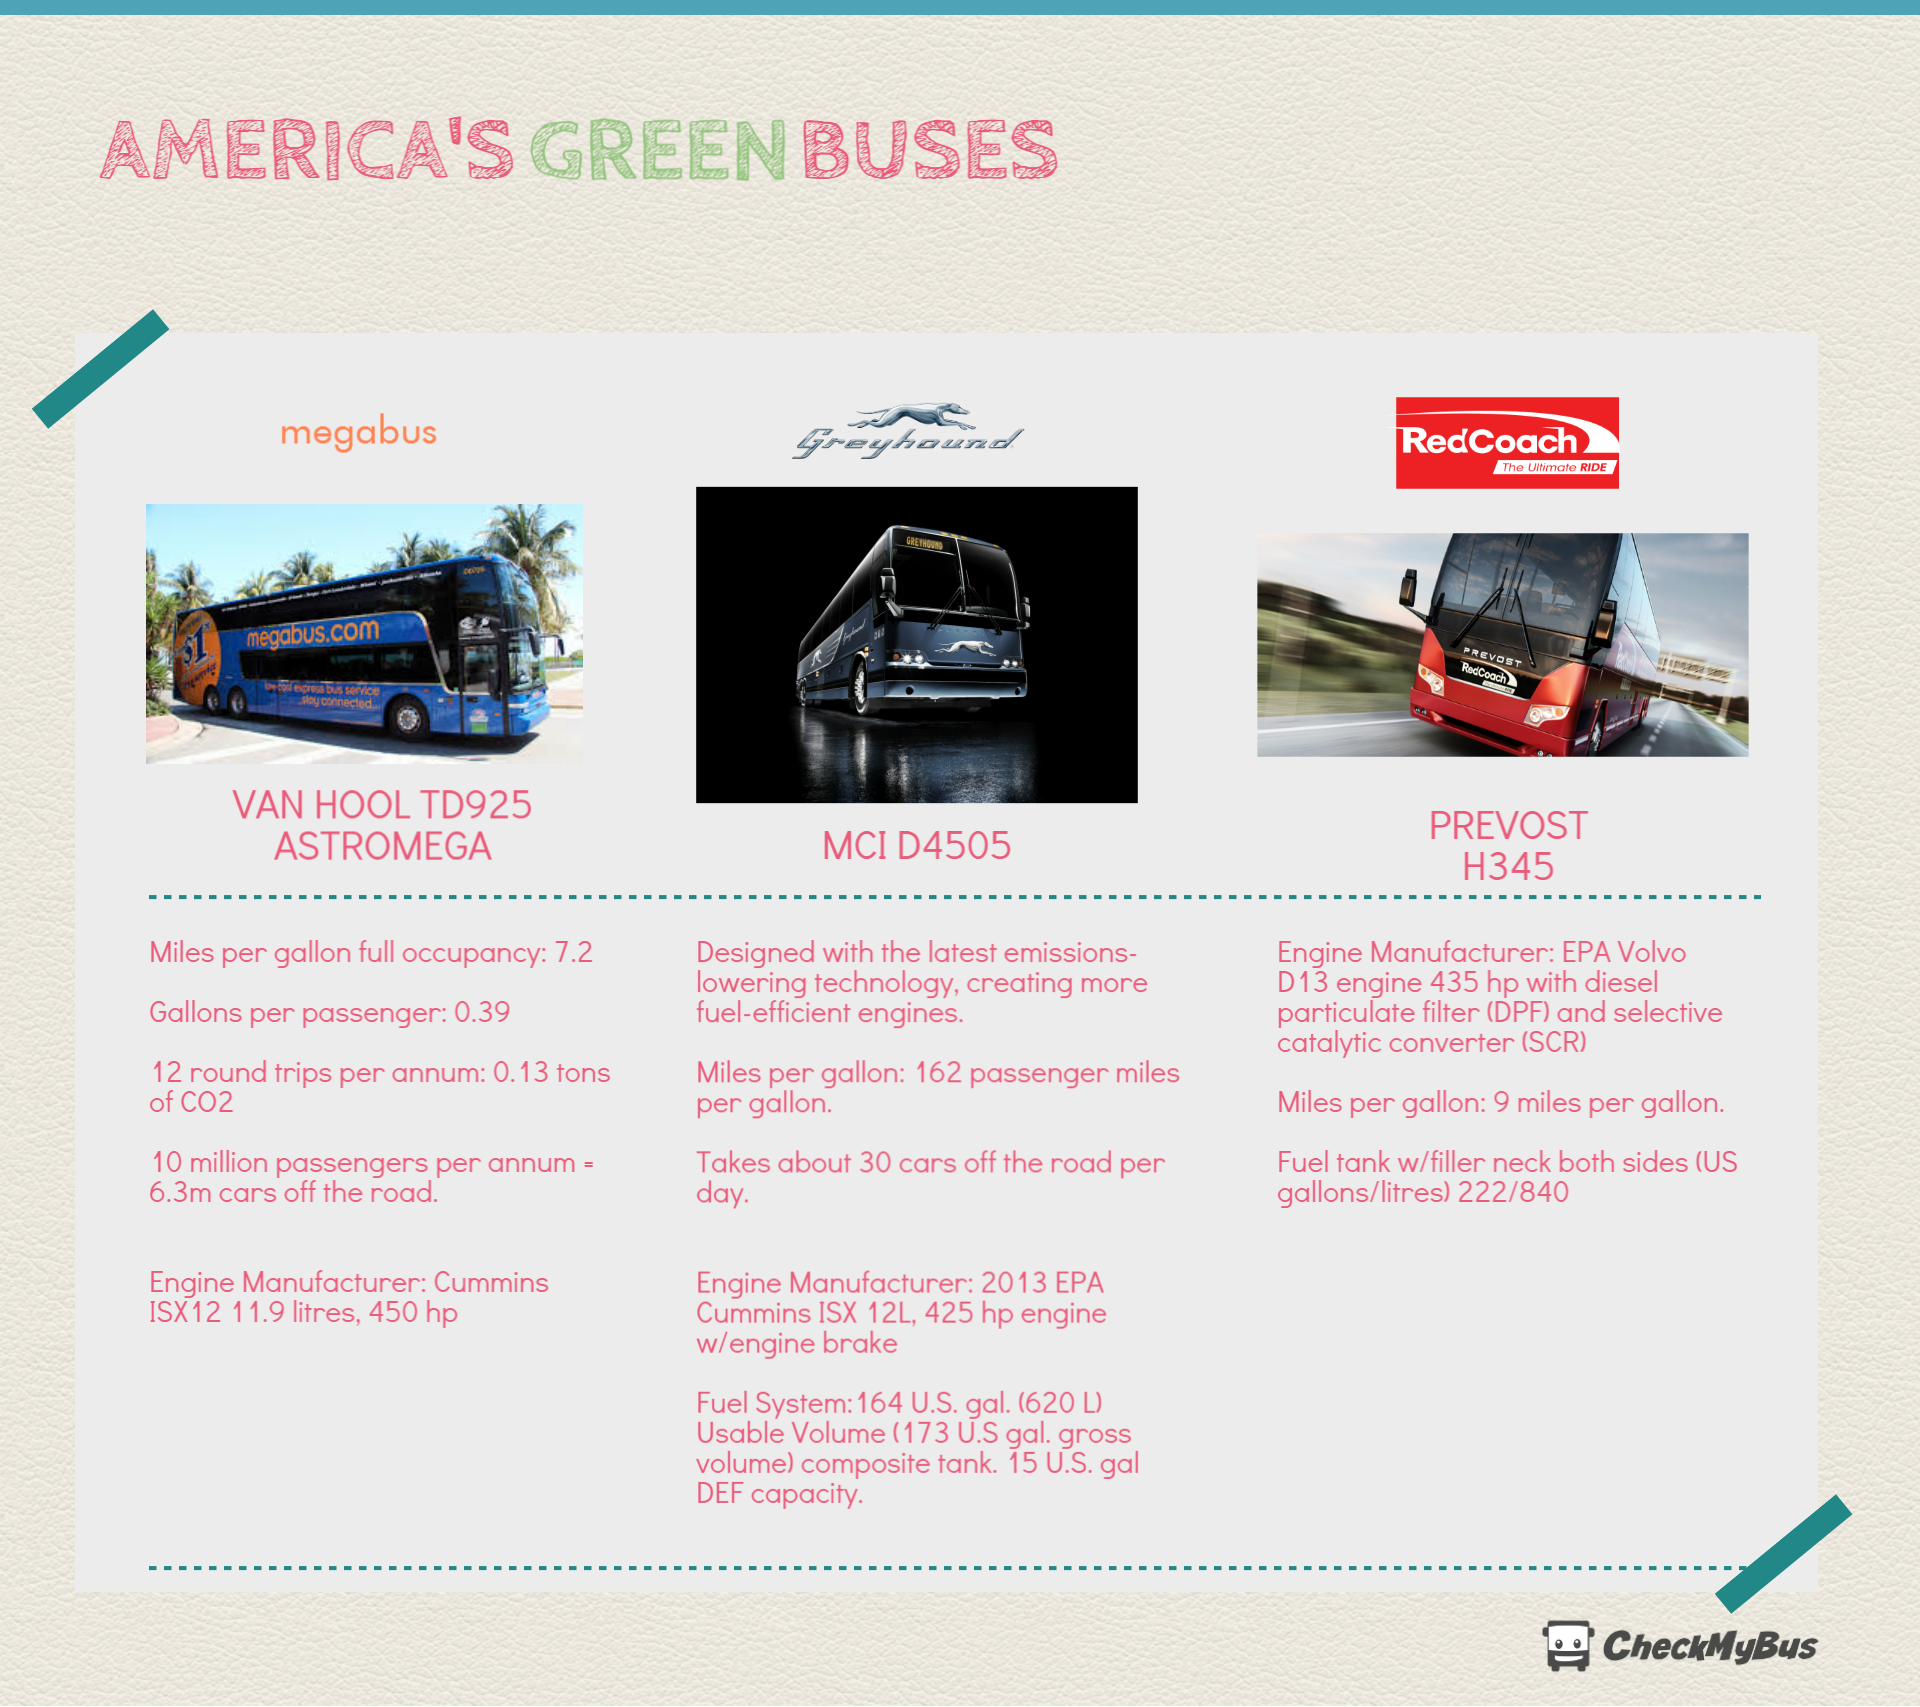 America's green bus operators